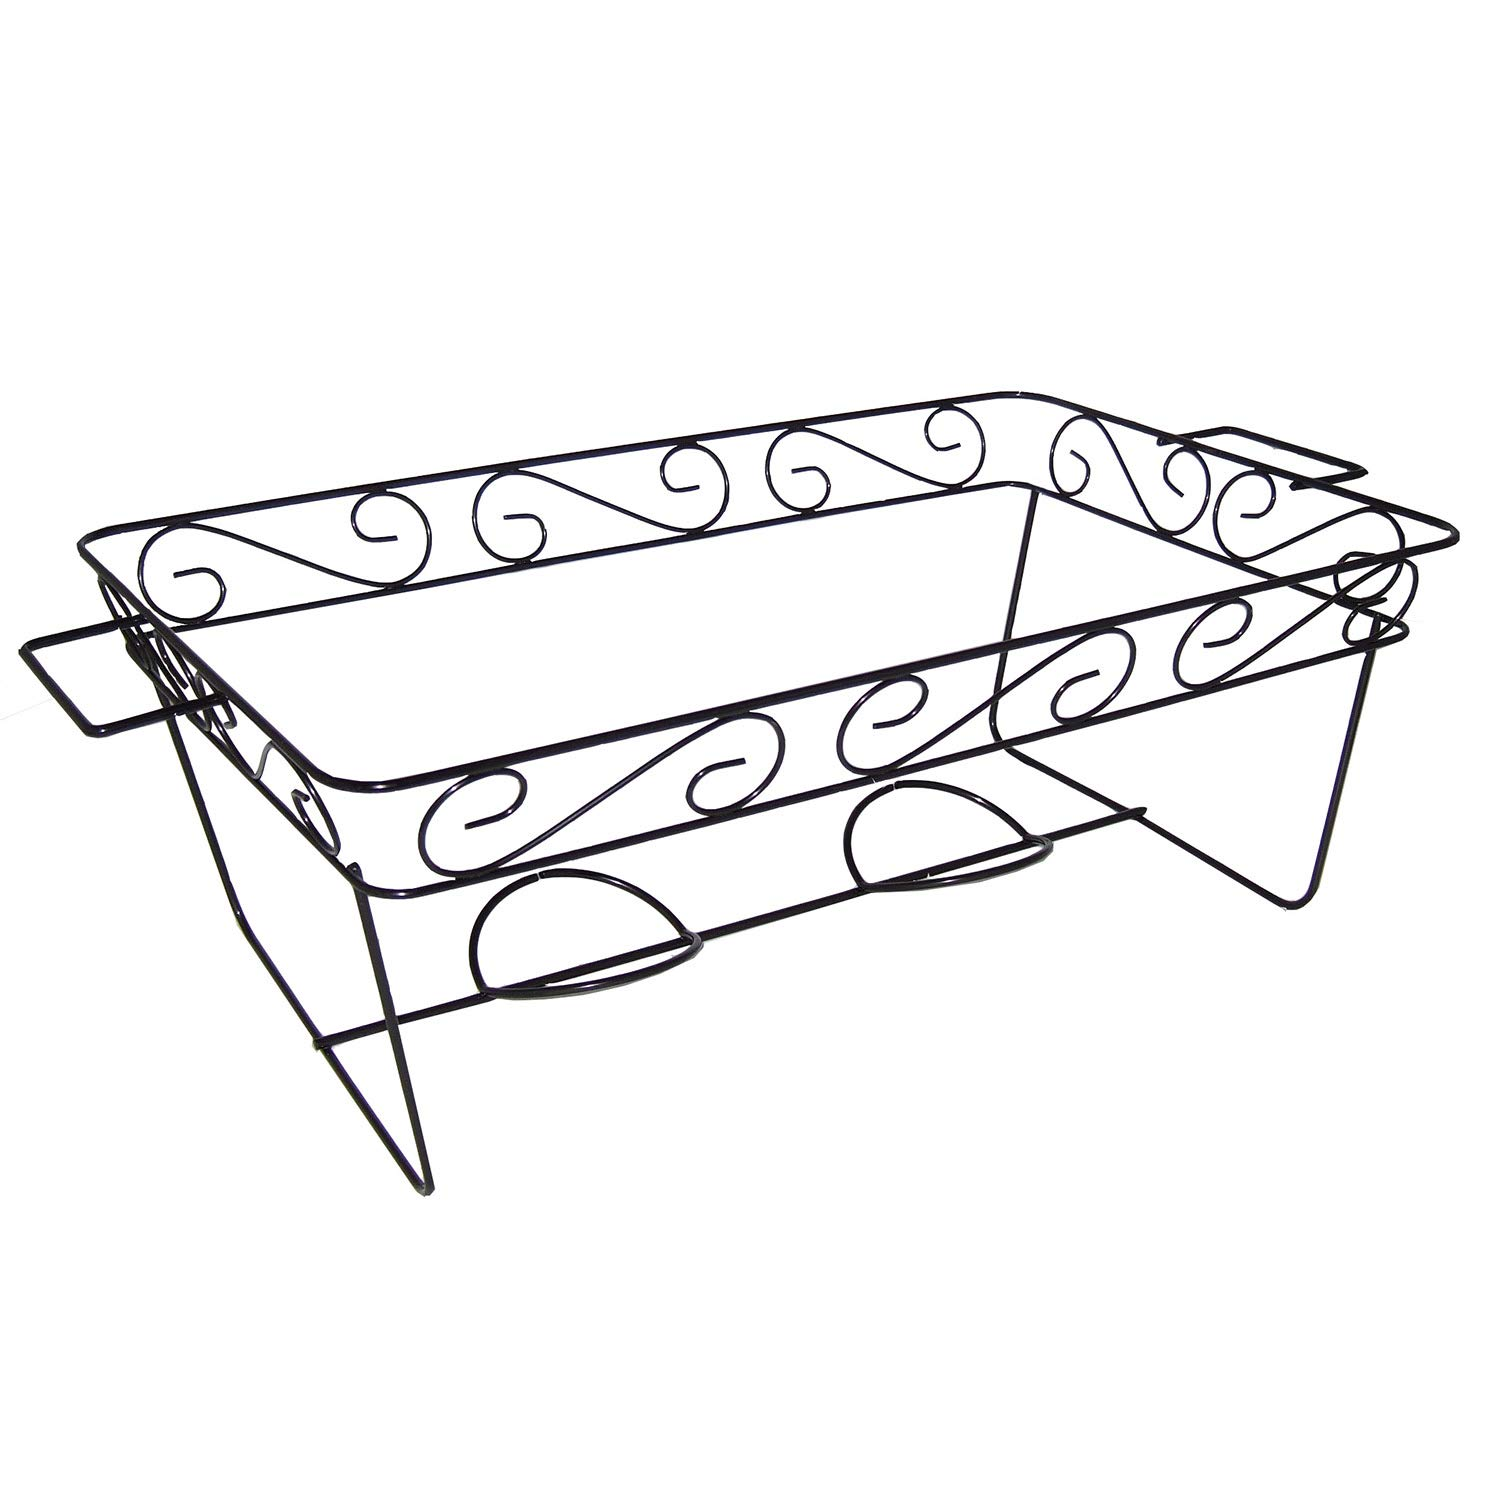 Steel Chafing Rack